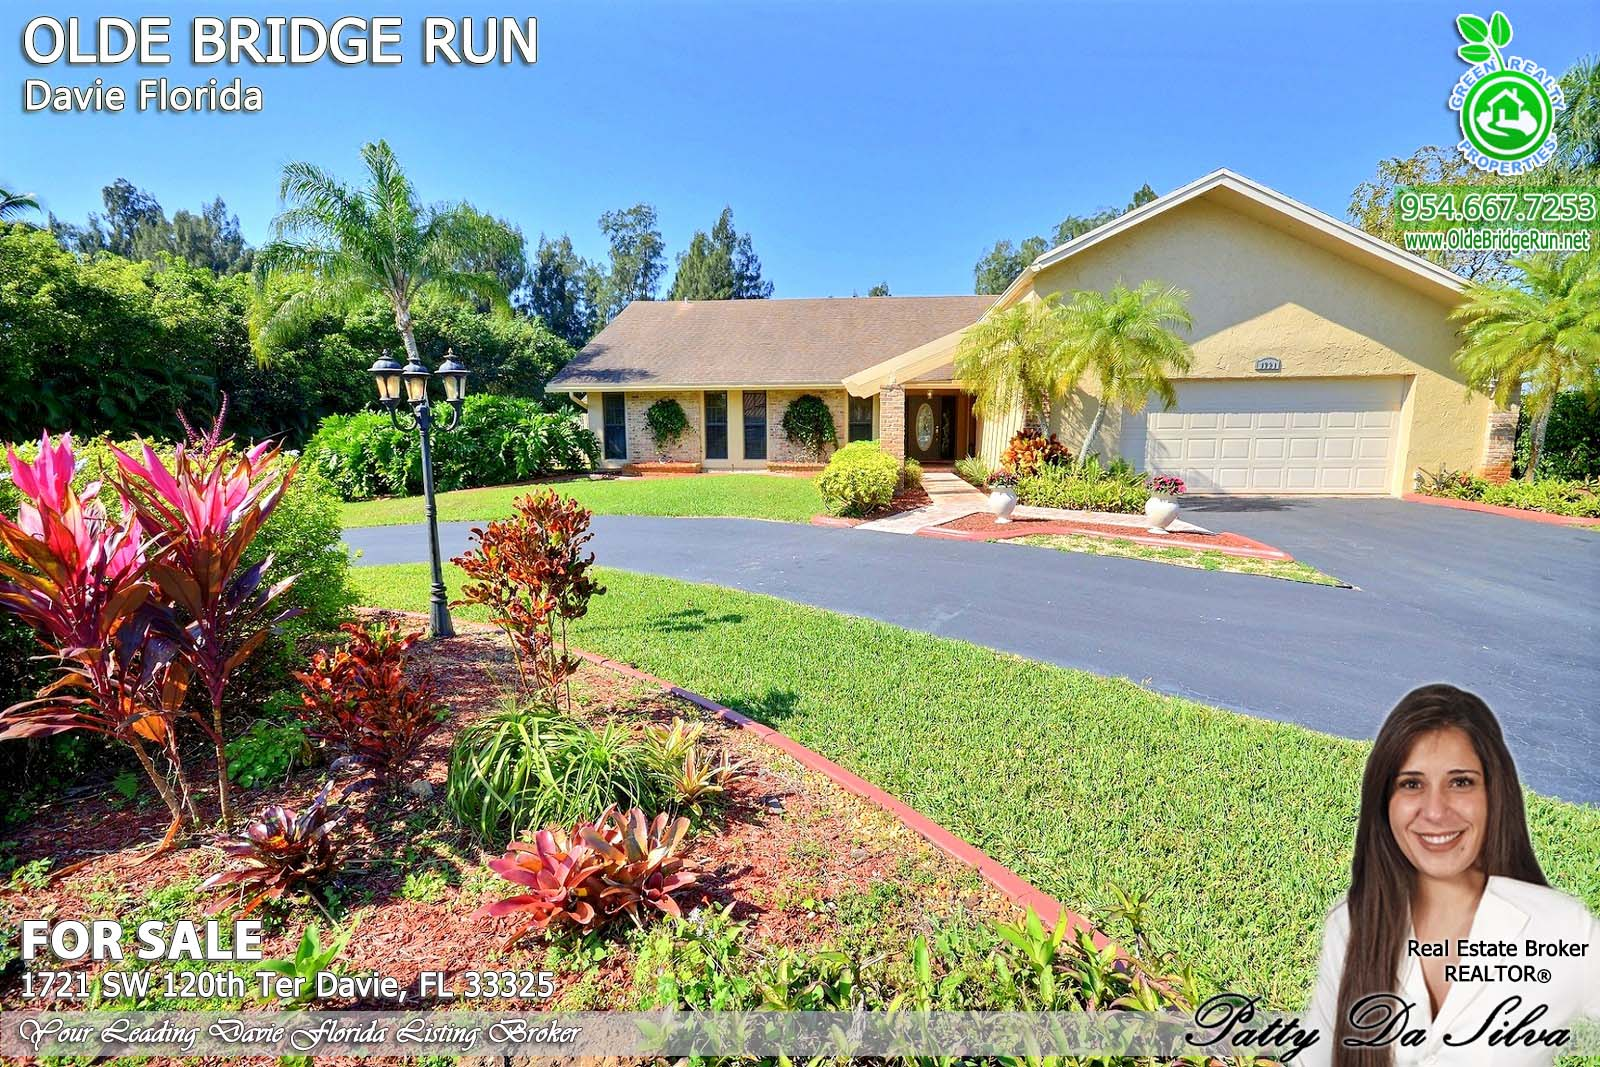 Olde Brodge Run agent buy home